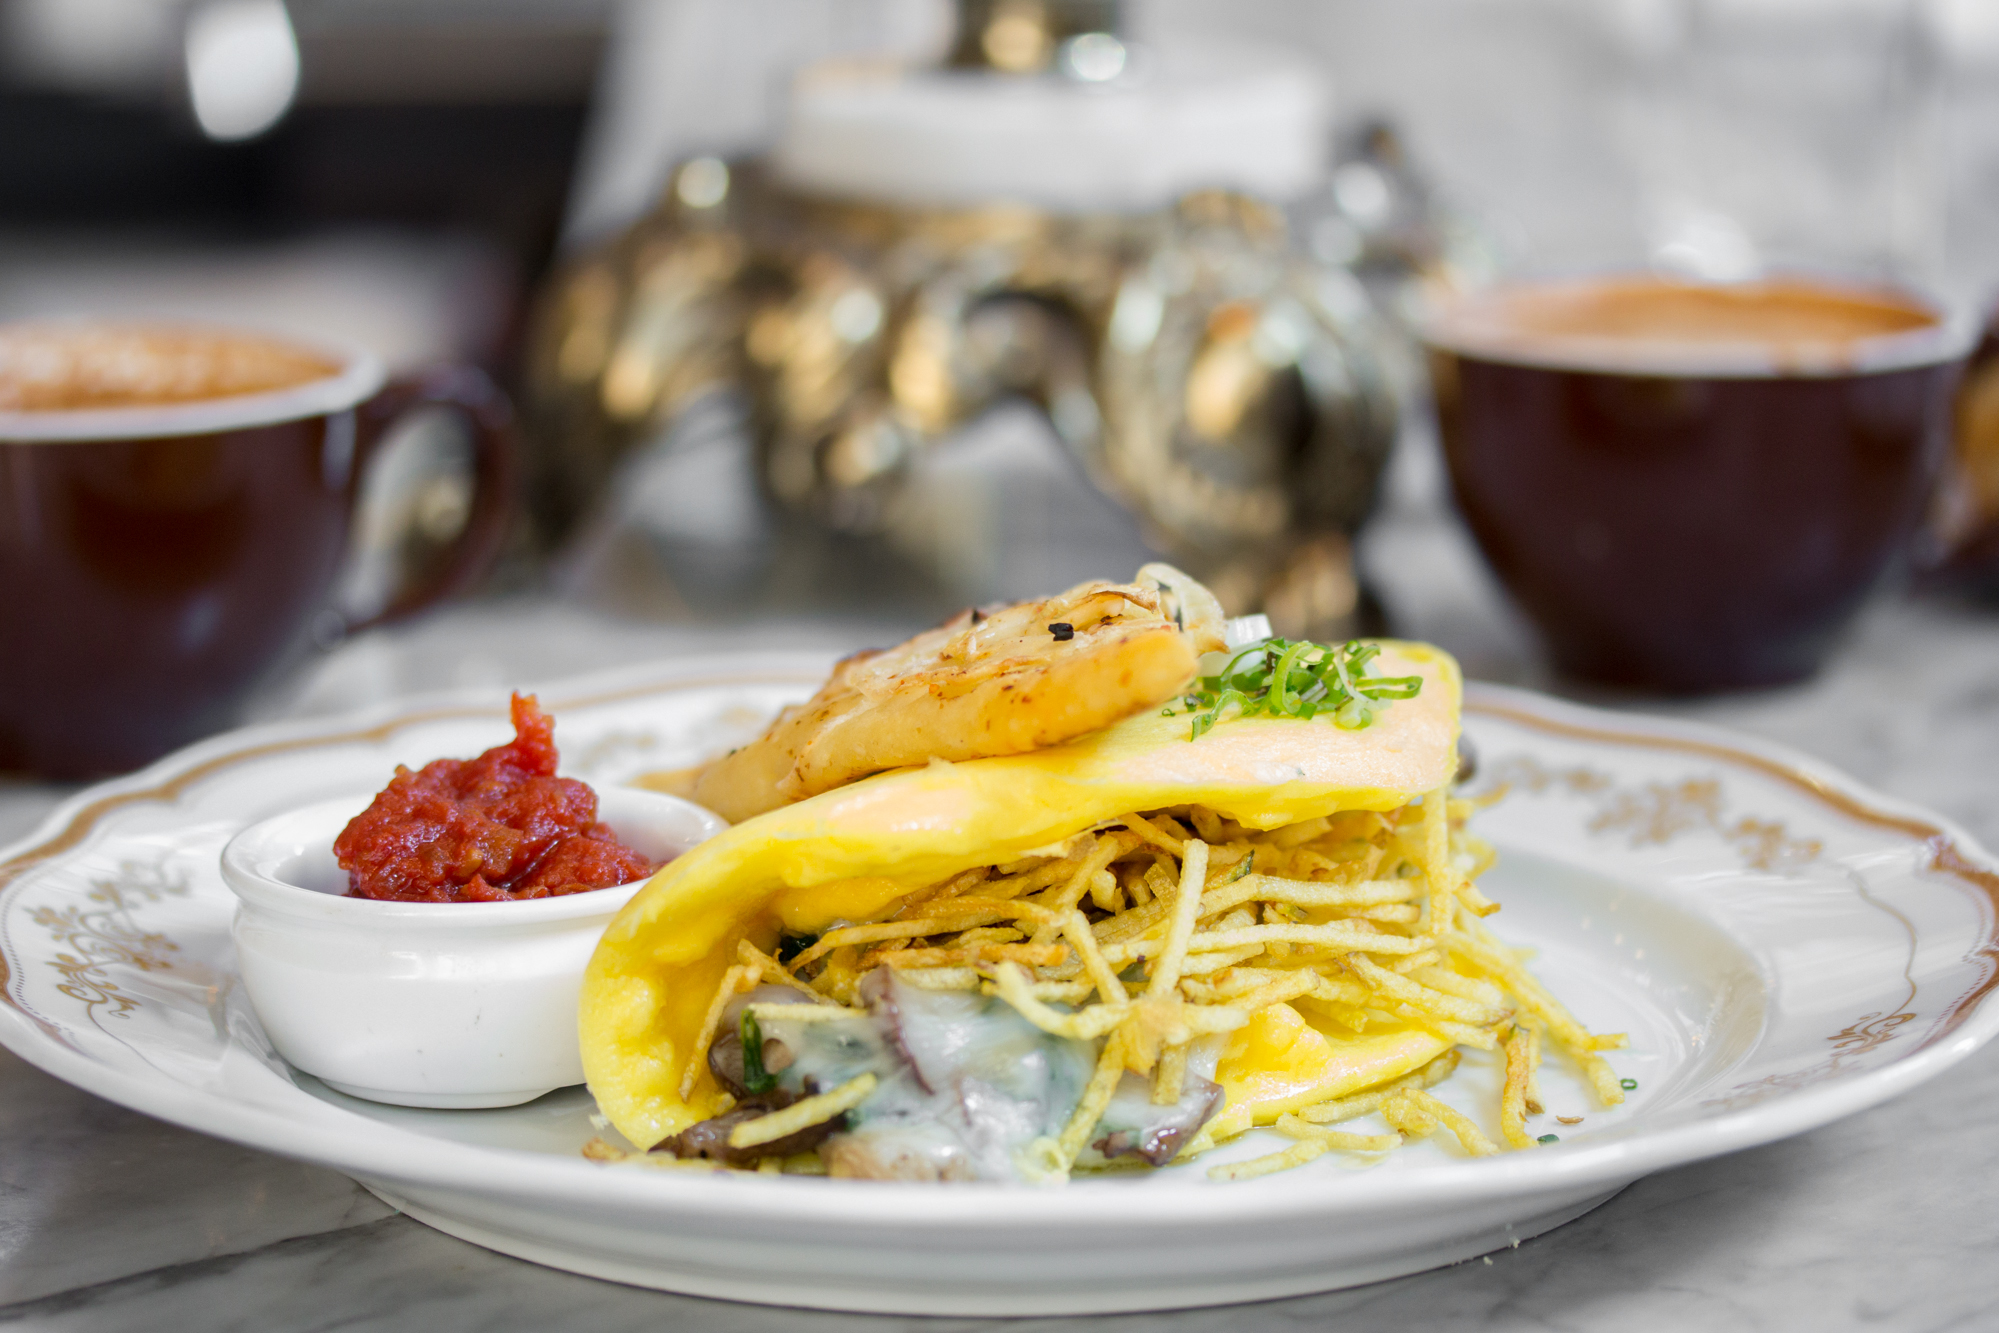 Mushroom omelette with shoestring potatoes on white plate on marble countertop